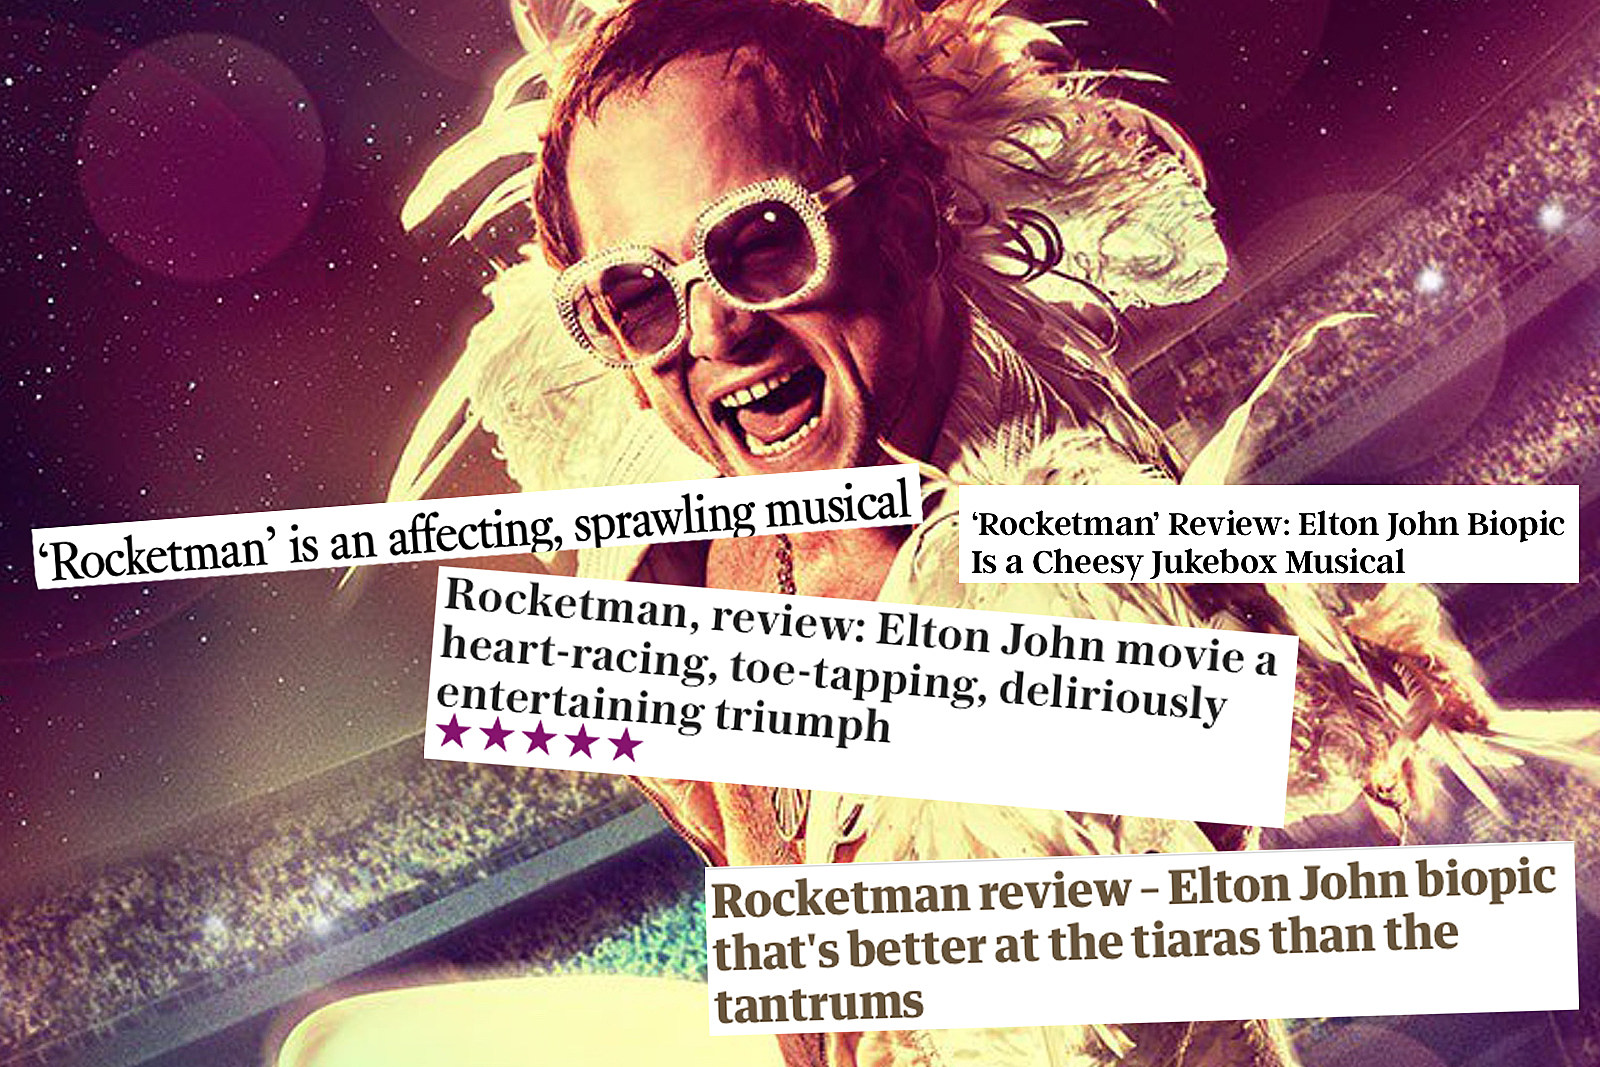 Elton John Adds His Own Rave to First Reviews for 'Rocketman'